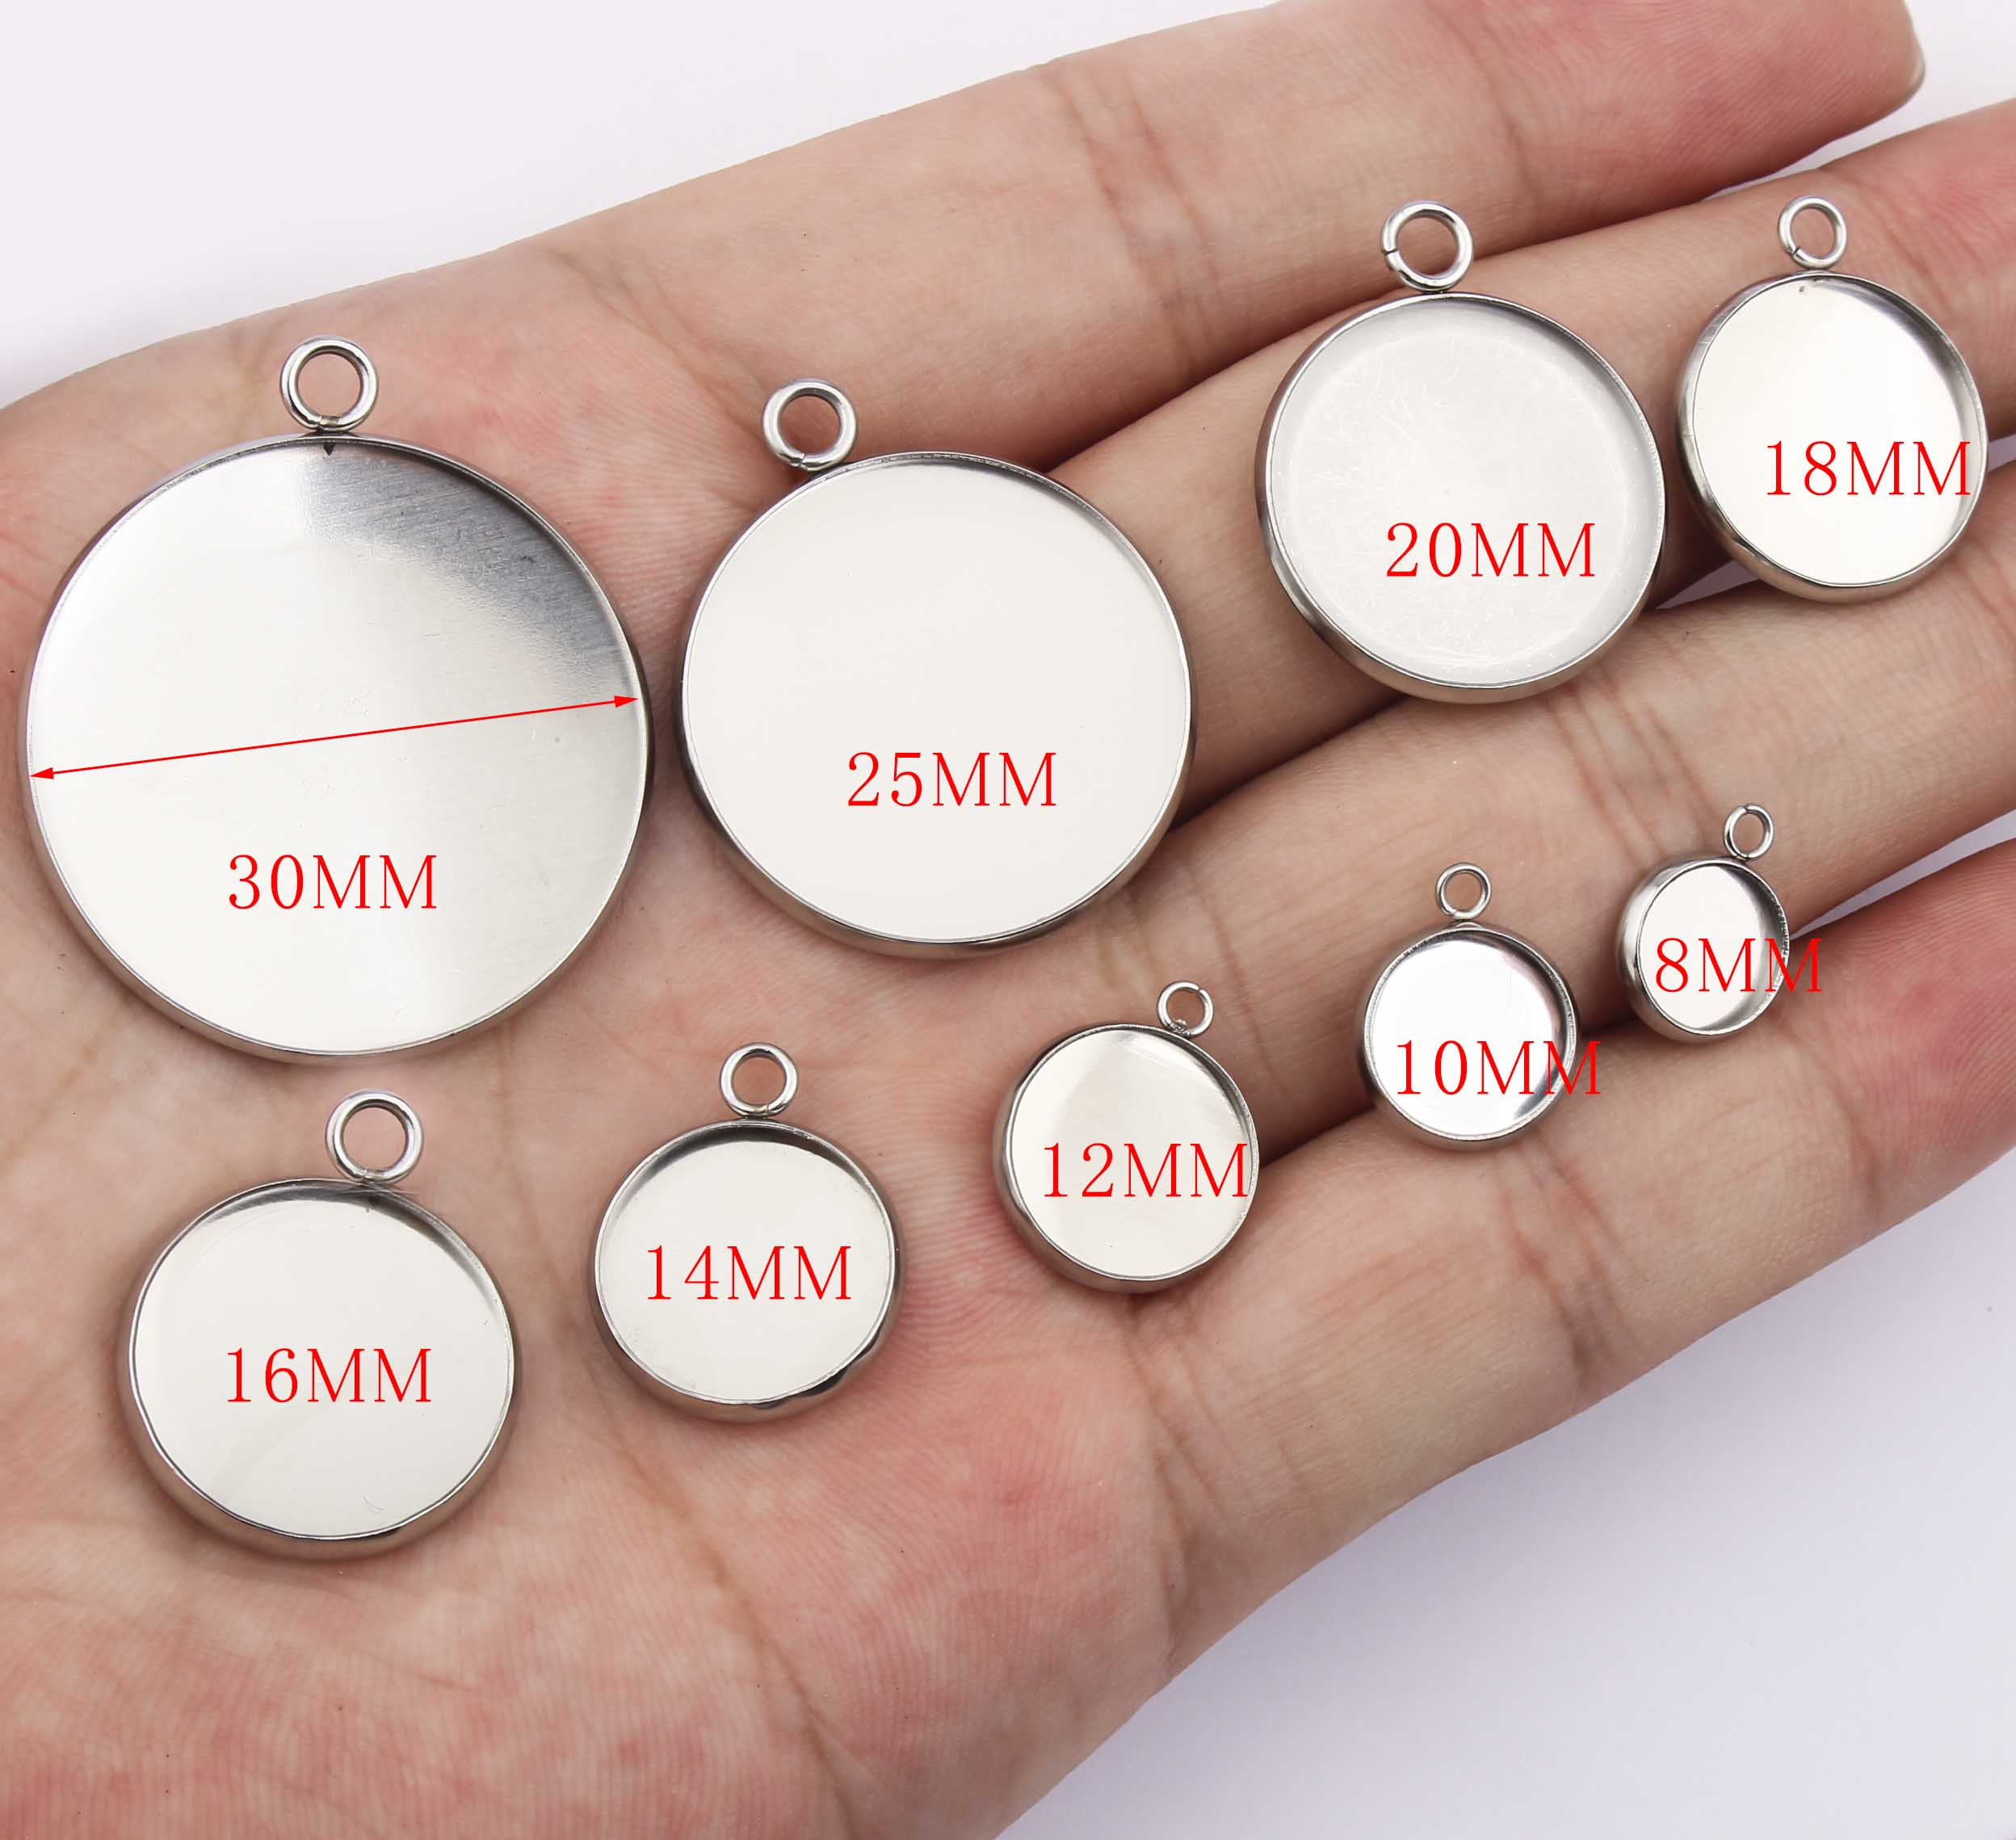 10pcs stainless steel 12mm 14mm 16mm 20mm 25mm round cabochon tray settings diy blanks pendant bezel for jewelry necklace making in Jewelry Findings Components from Jewelry Accessories